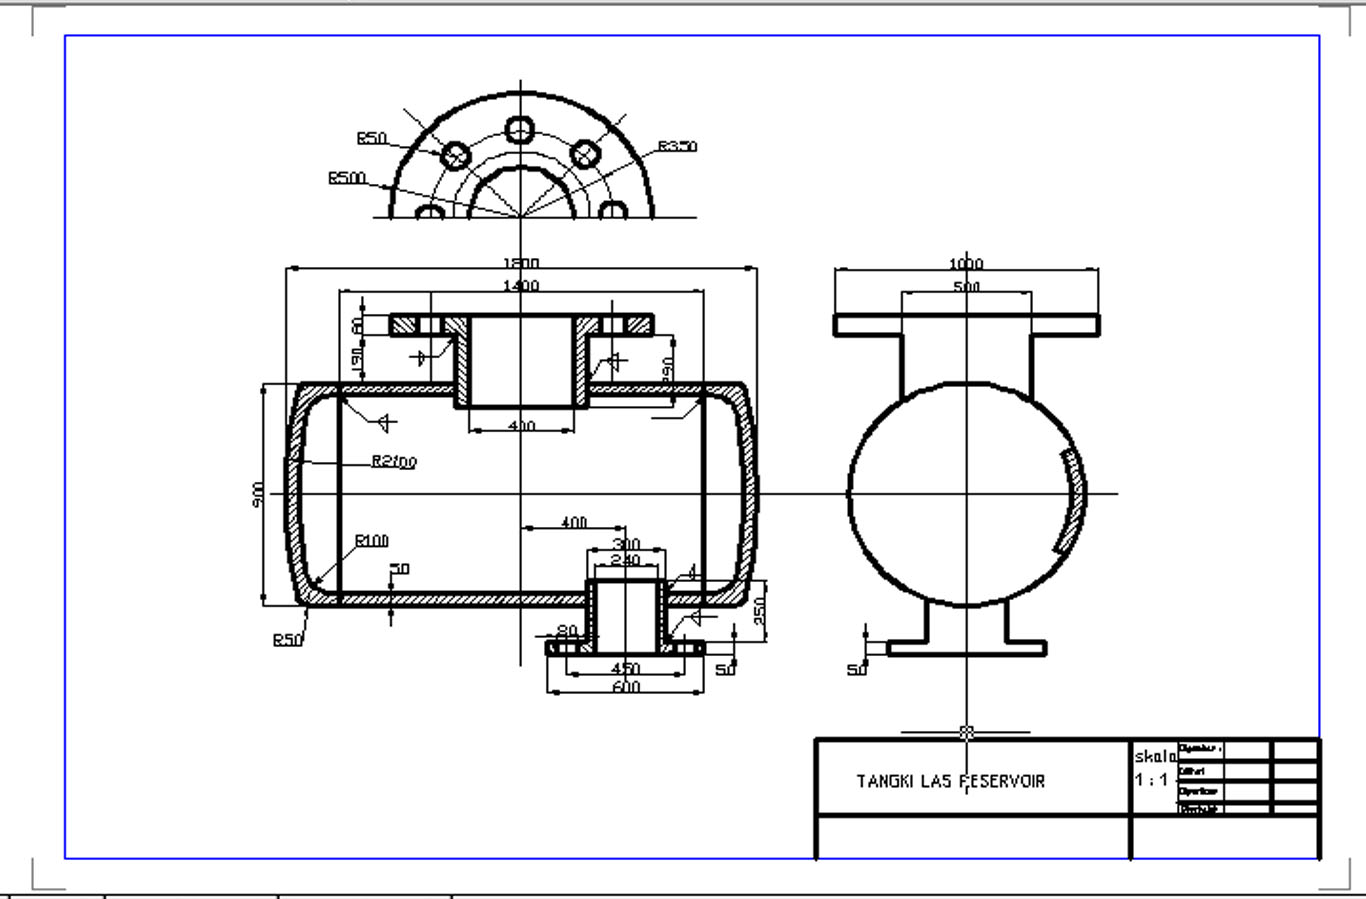 Technic Autocad Working Drawings Welding Tank Reservoir